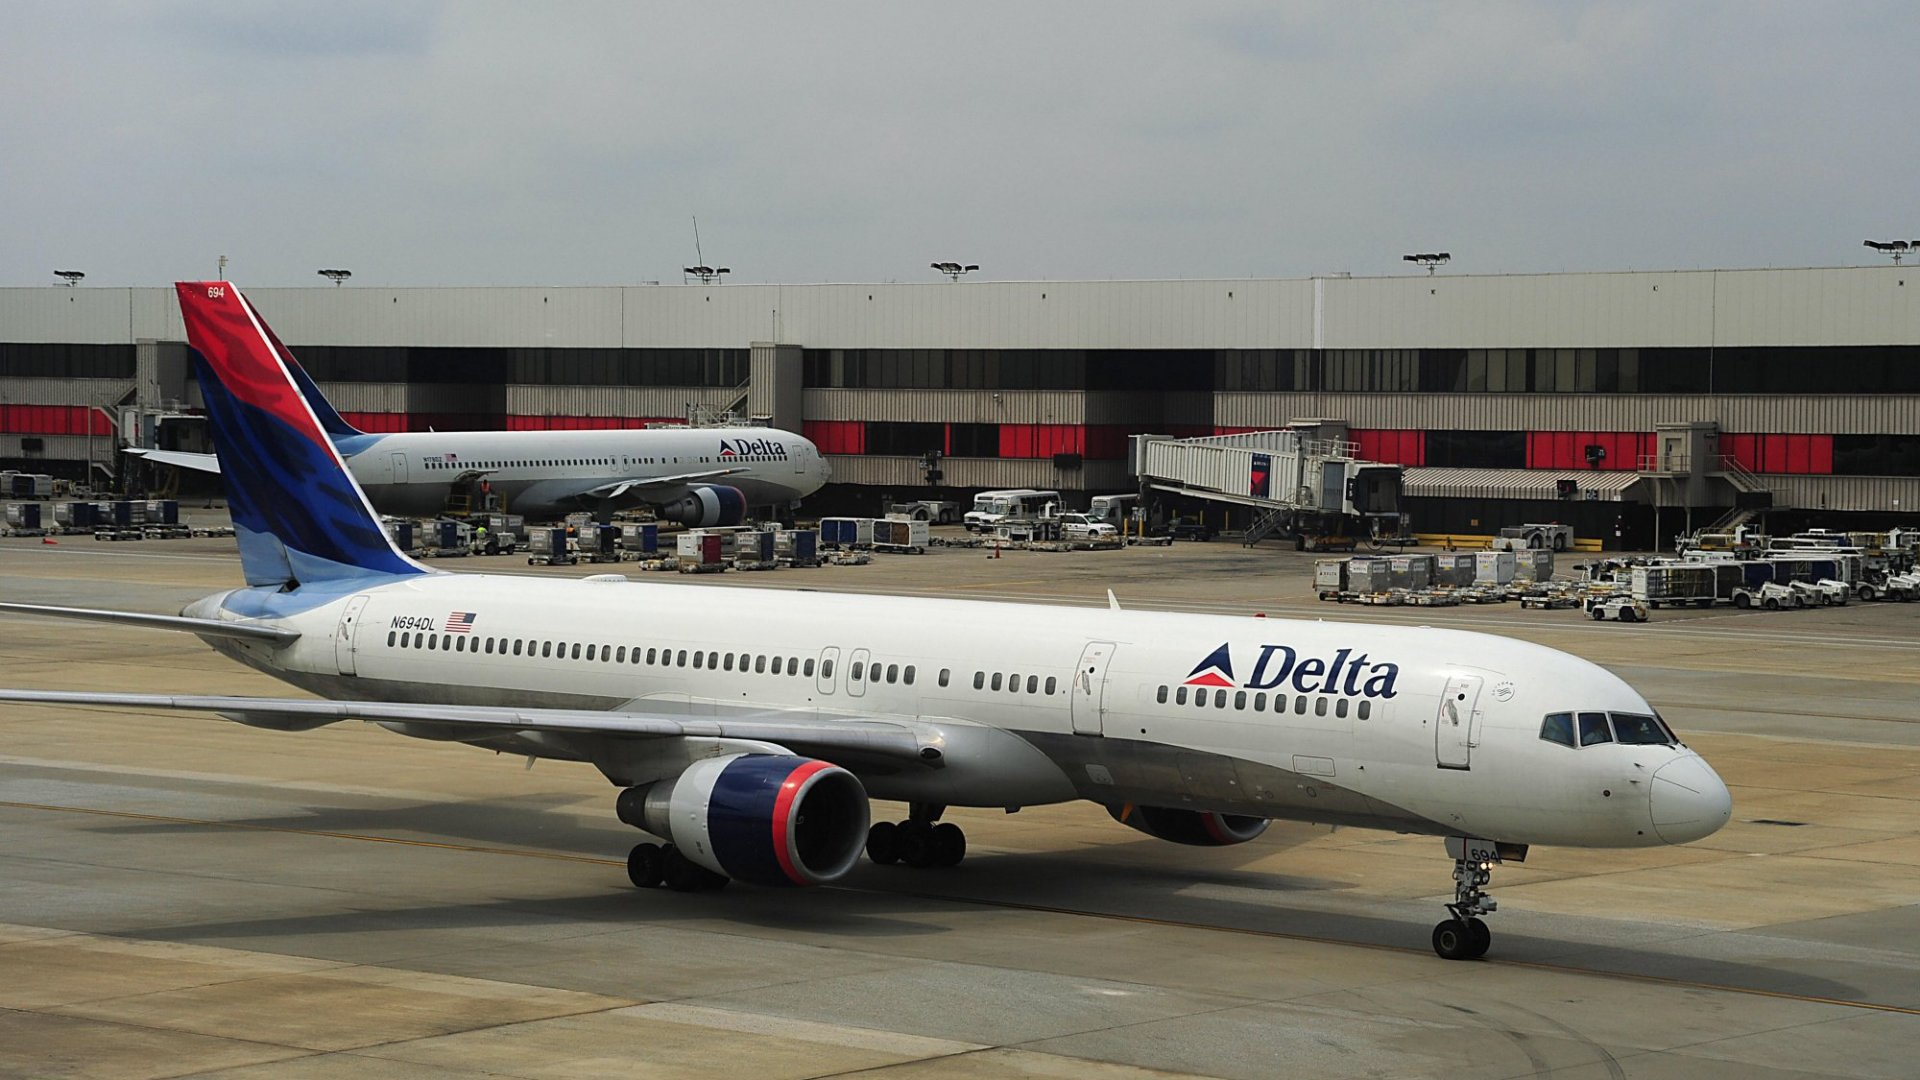 Lithium-Ion Battery on Delta Air Lines Flight Explodes, Catches Fire (Quick-Thinking Crew Averts Disaster)